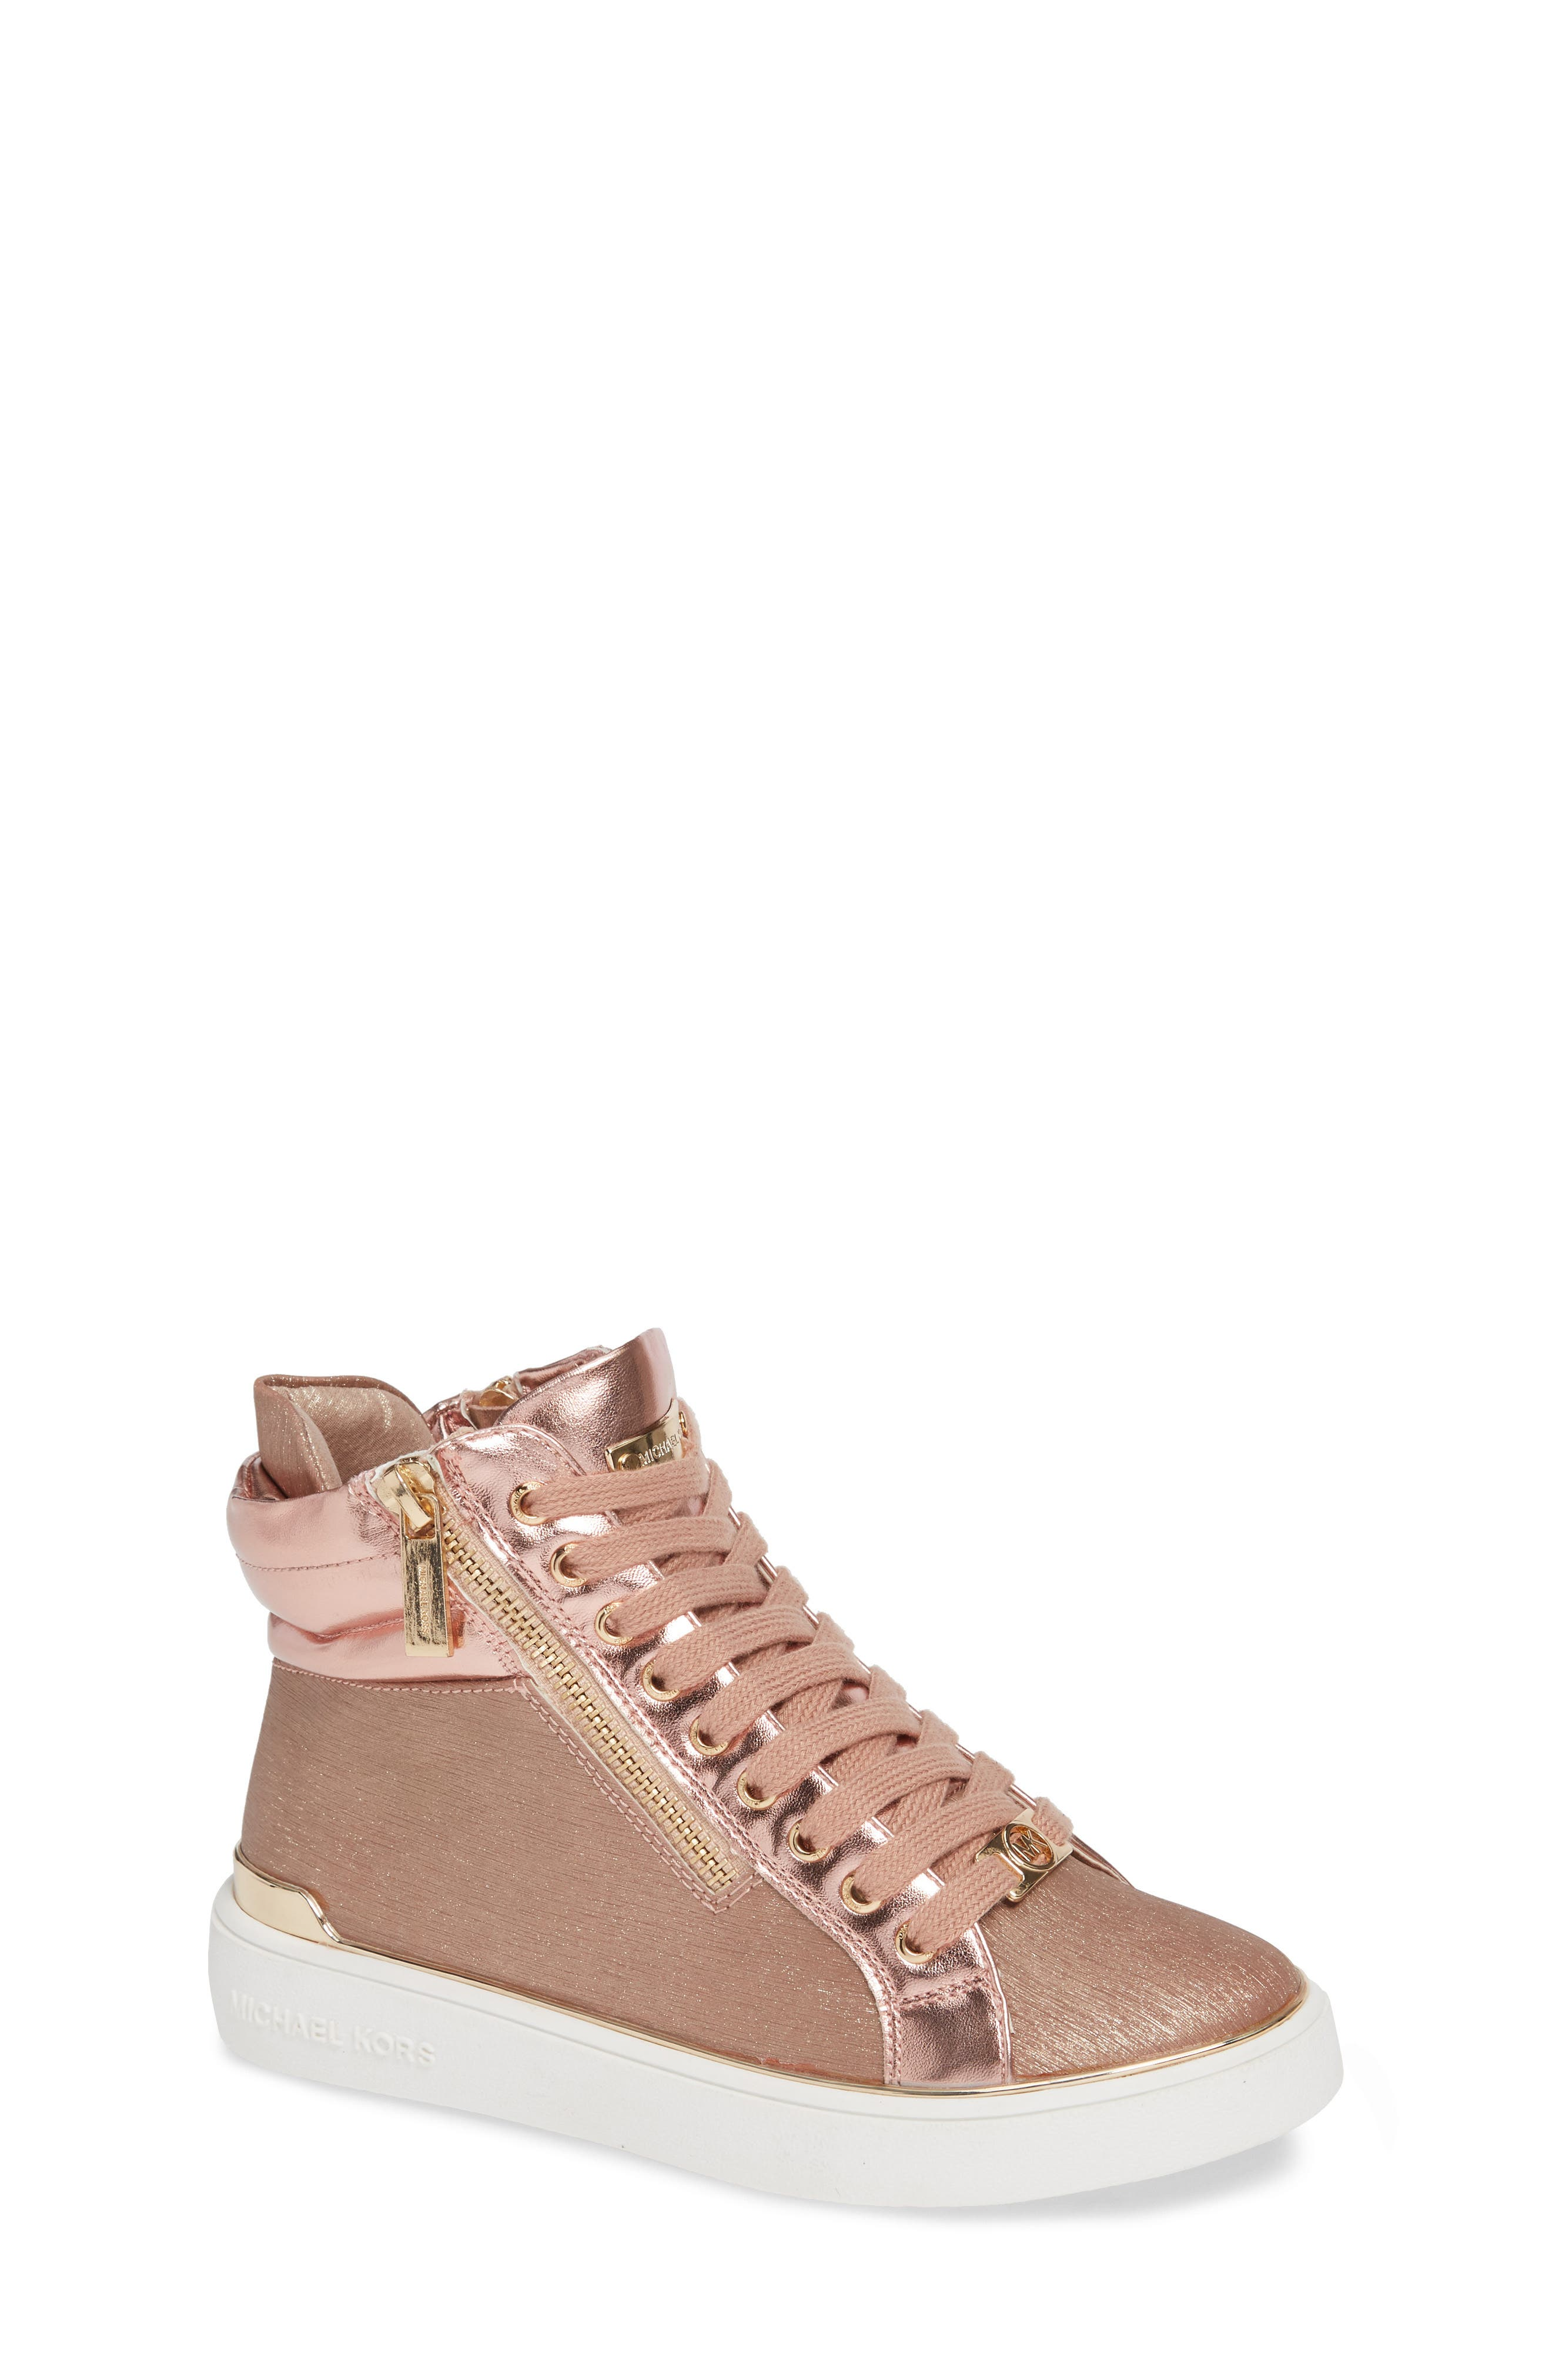 High Top Sneaker,                         Main,                         color, ROSE GOLD